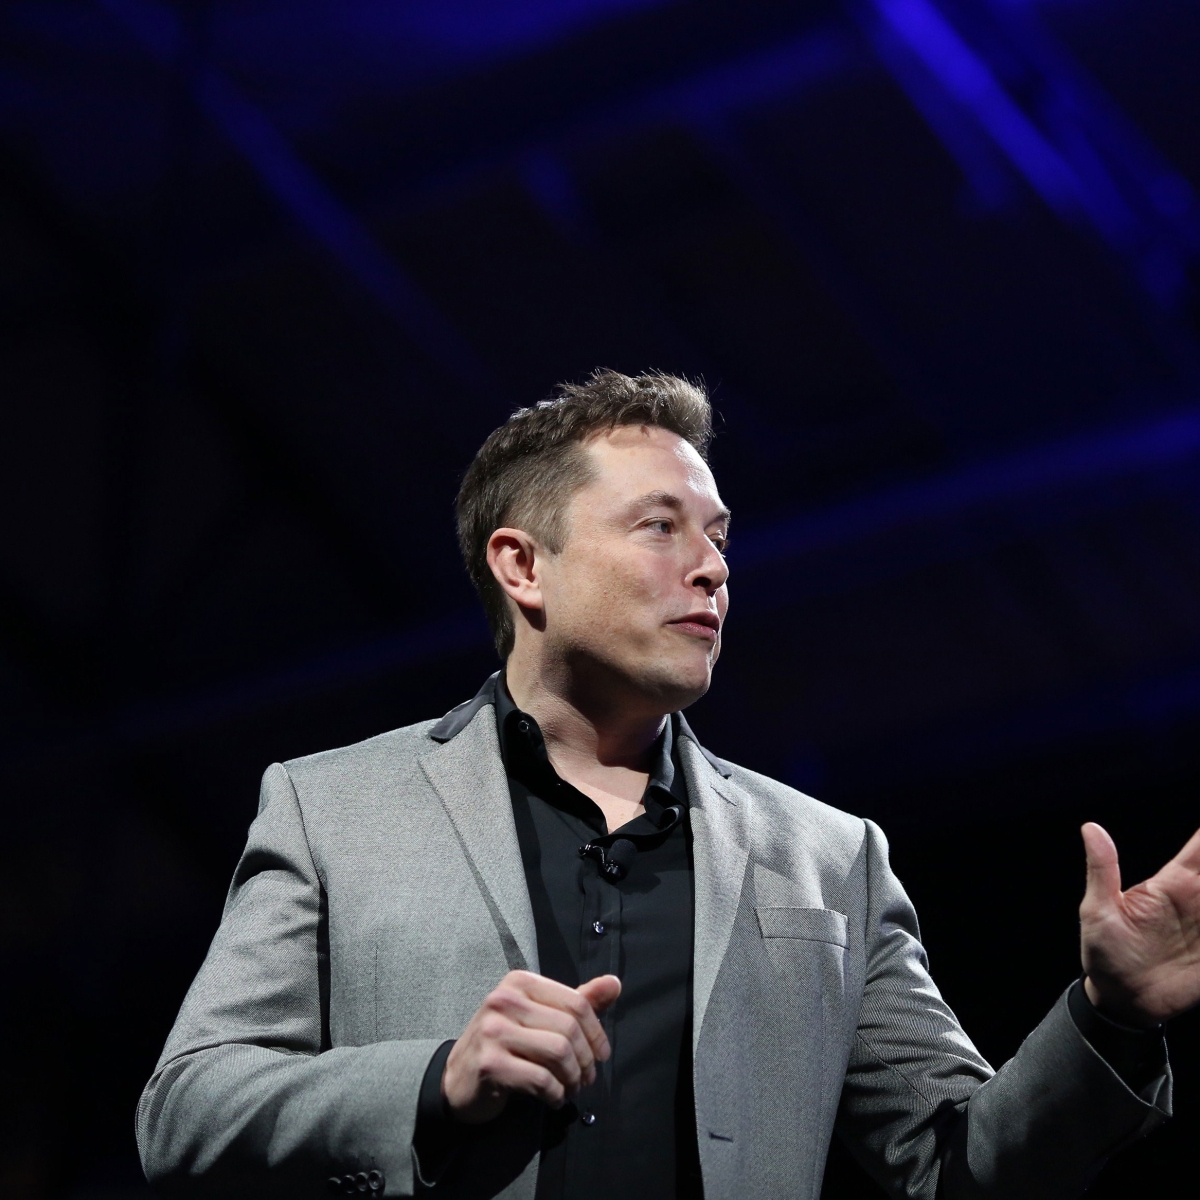 Tesla's founder Elon Musk pushes Dogecoin's price upwards yet again